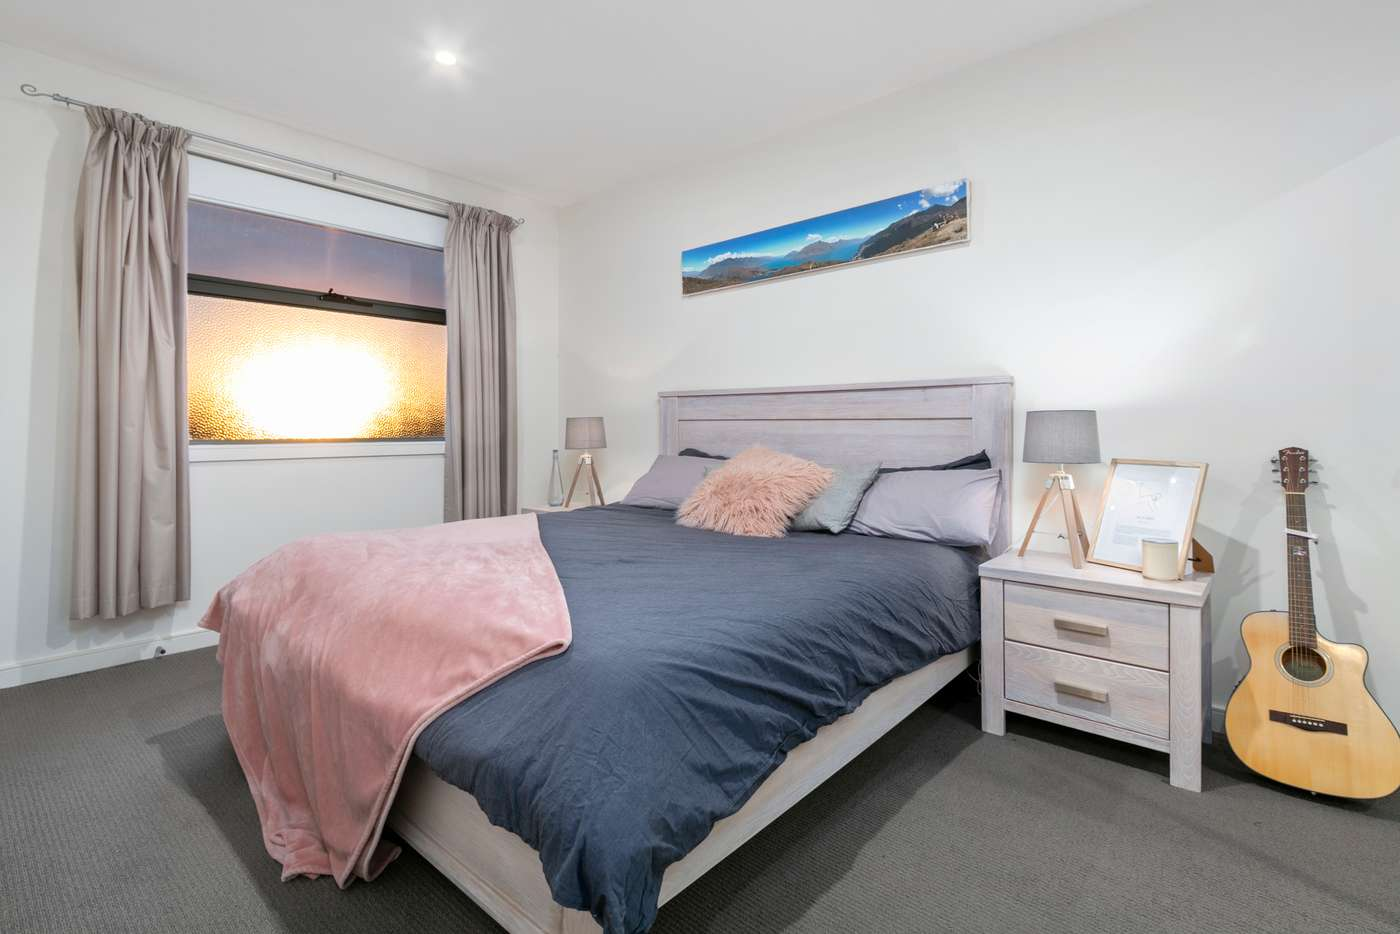 Fifth view of Homely townhouse listing, 2/34 Belmont Road West, Croydon South VIC 3136